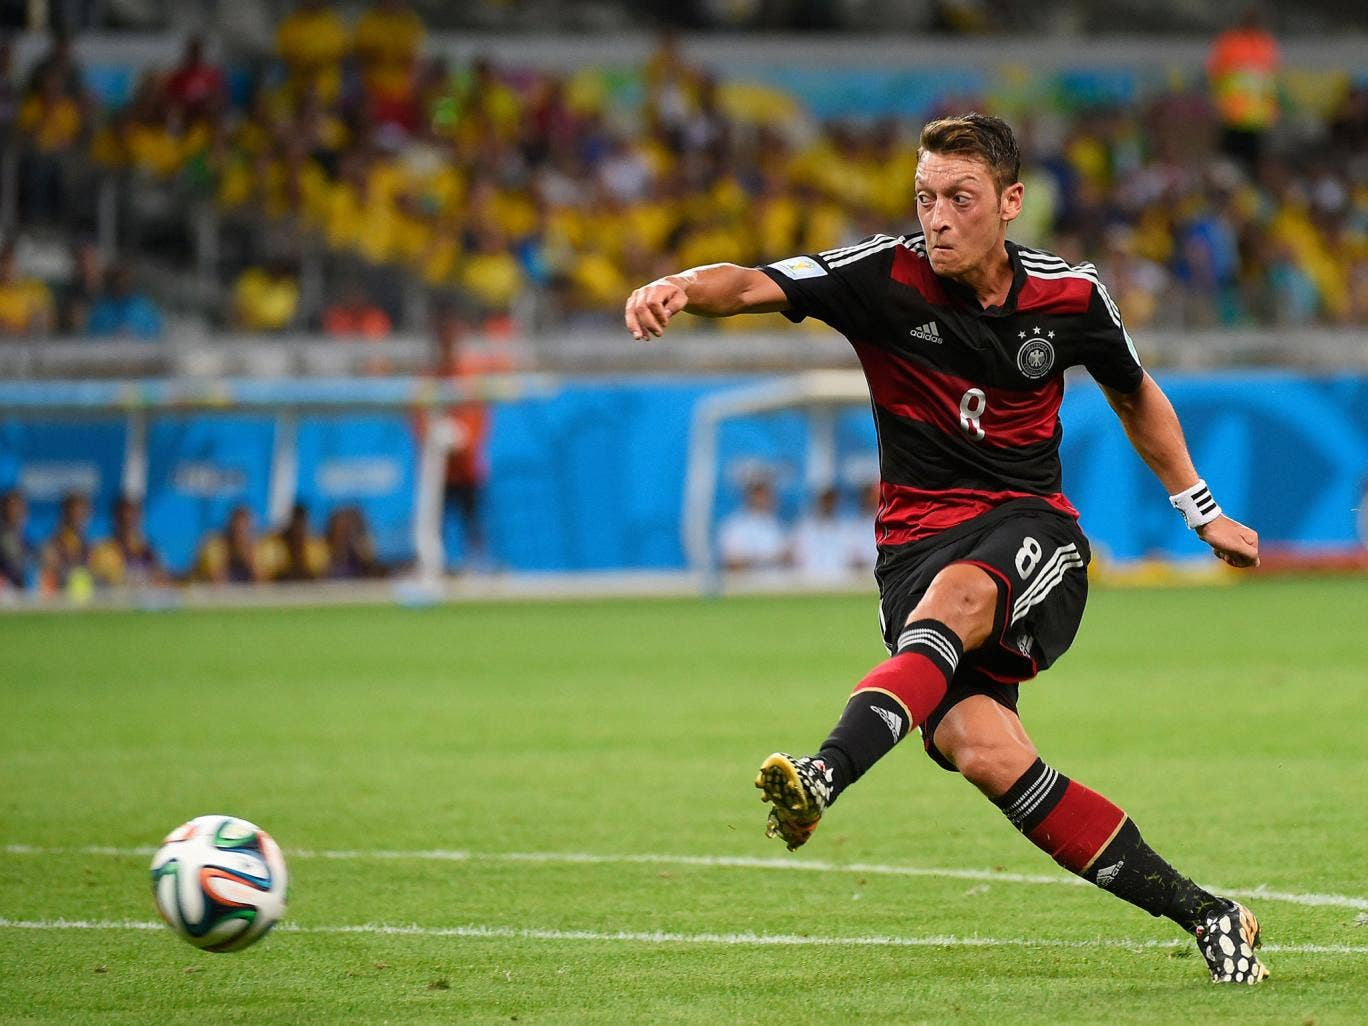 Mesut Ozil has an effort on goal, which drifts agonisingly wide of the post